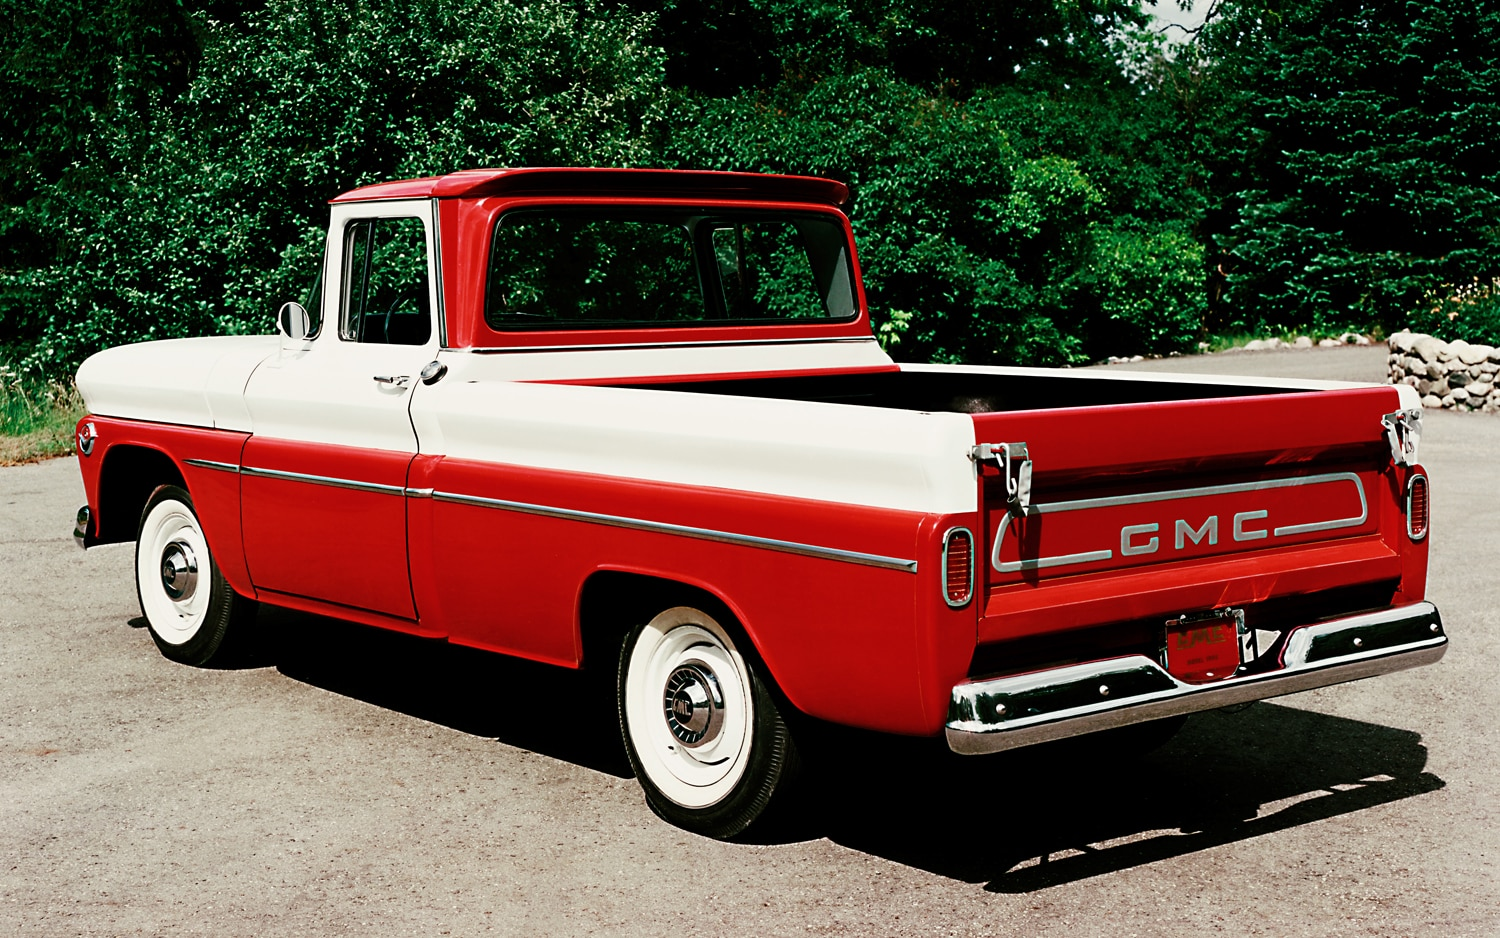 1960 GMC Model 1000 Wideside Pickup Truck